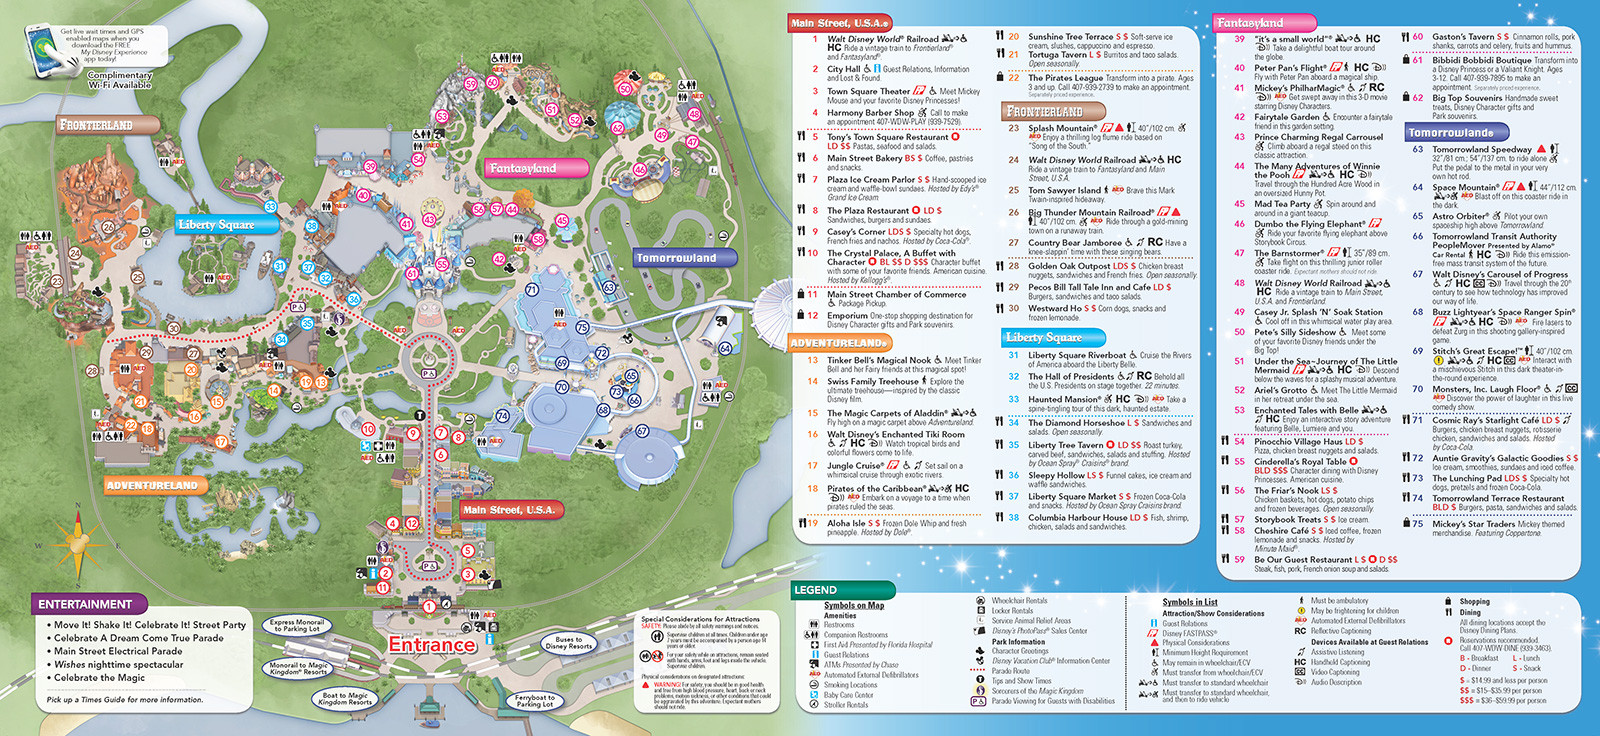 Printable Map Animal Kingdom Luxury New 2013 Park Maps And Times Guides 4 Of 20